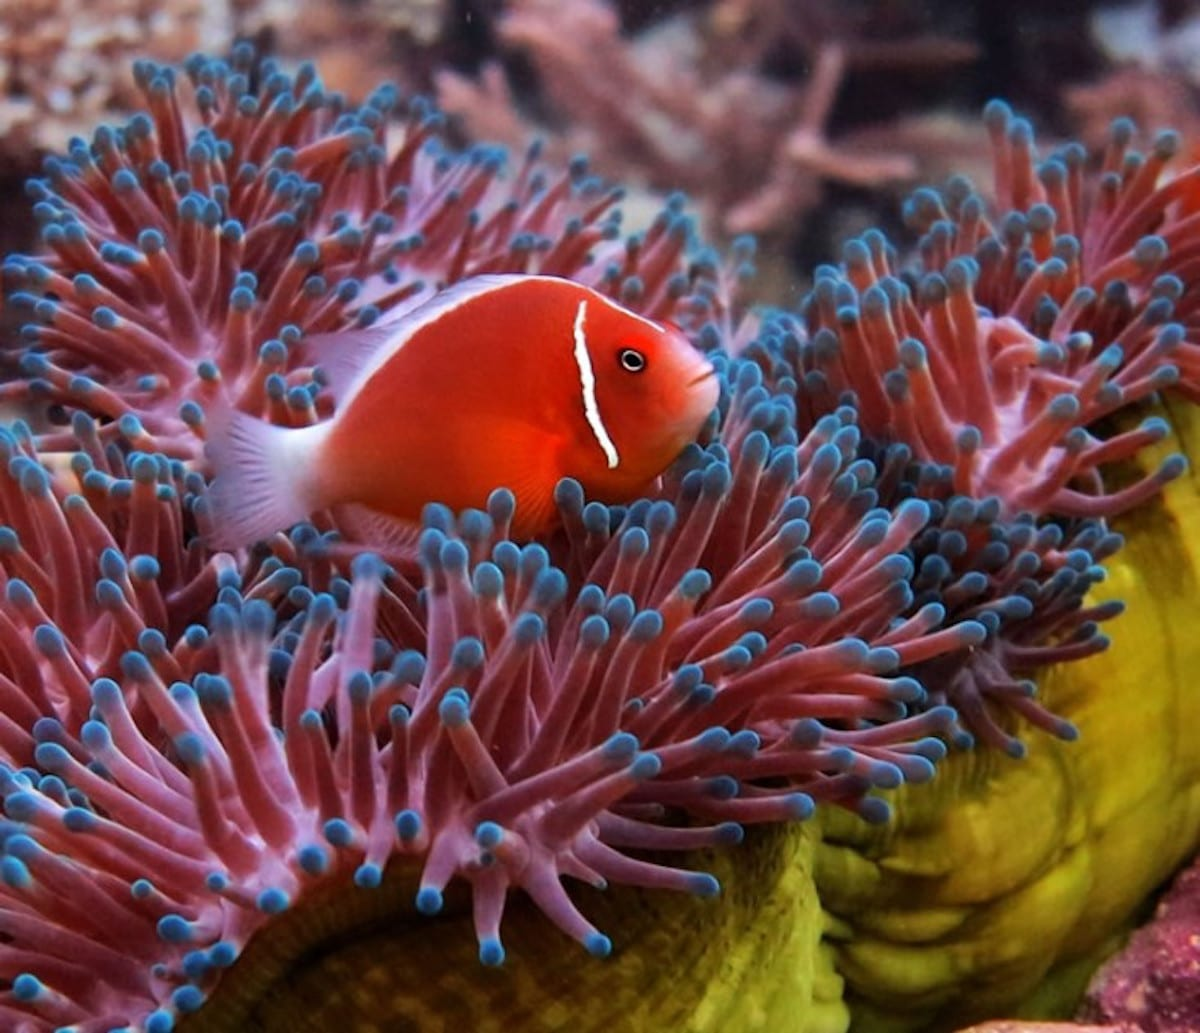 Explore-life-on-a-coral-reef-in-the-new-coral-reef-education-portal ...